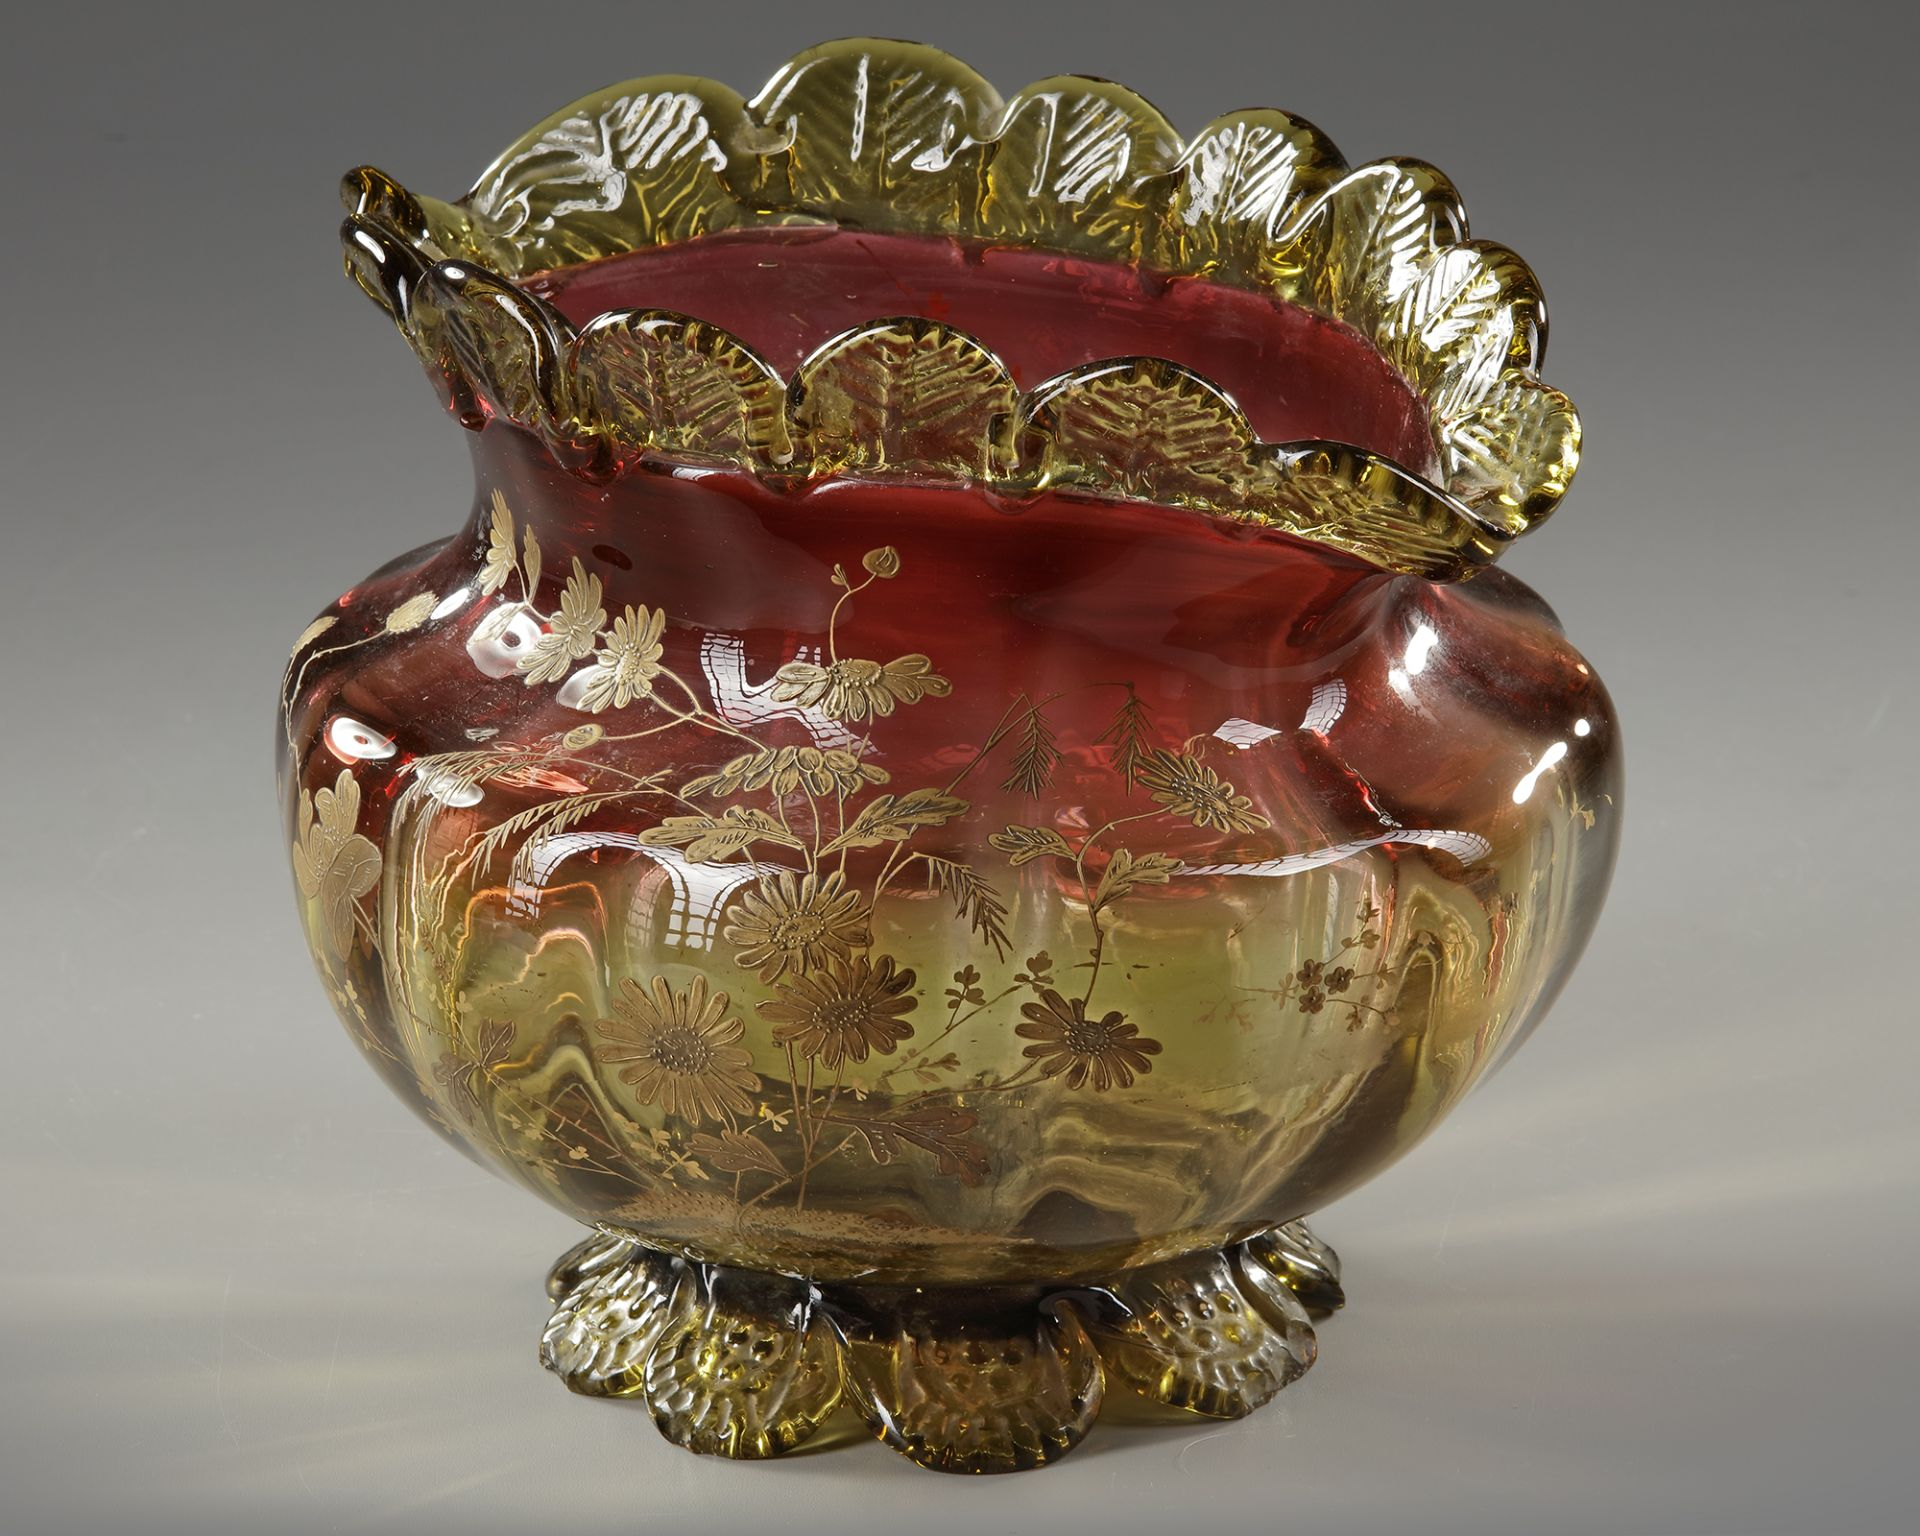 A BLOWN GLASS BOWL, 'LE GRAS', LATE 19TH CENTURY - Image 3 of 4